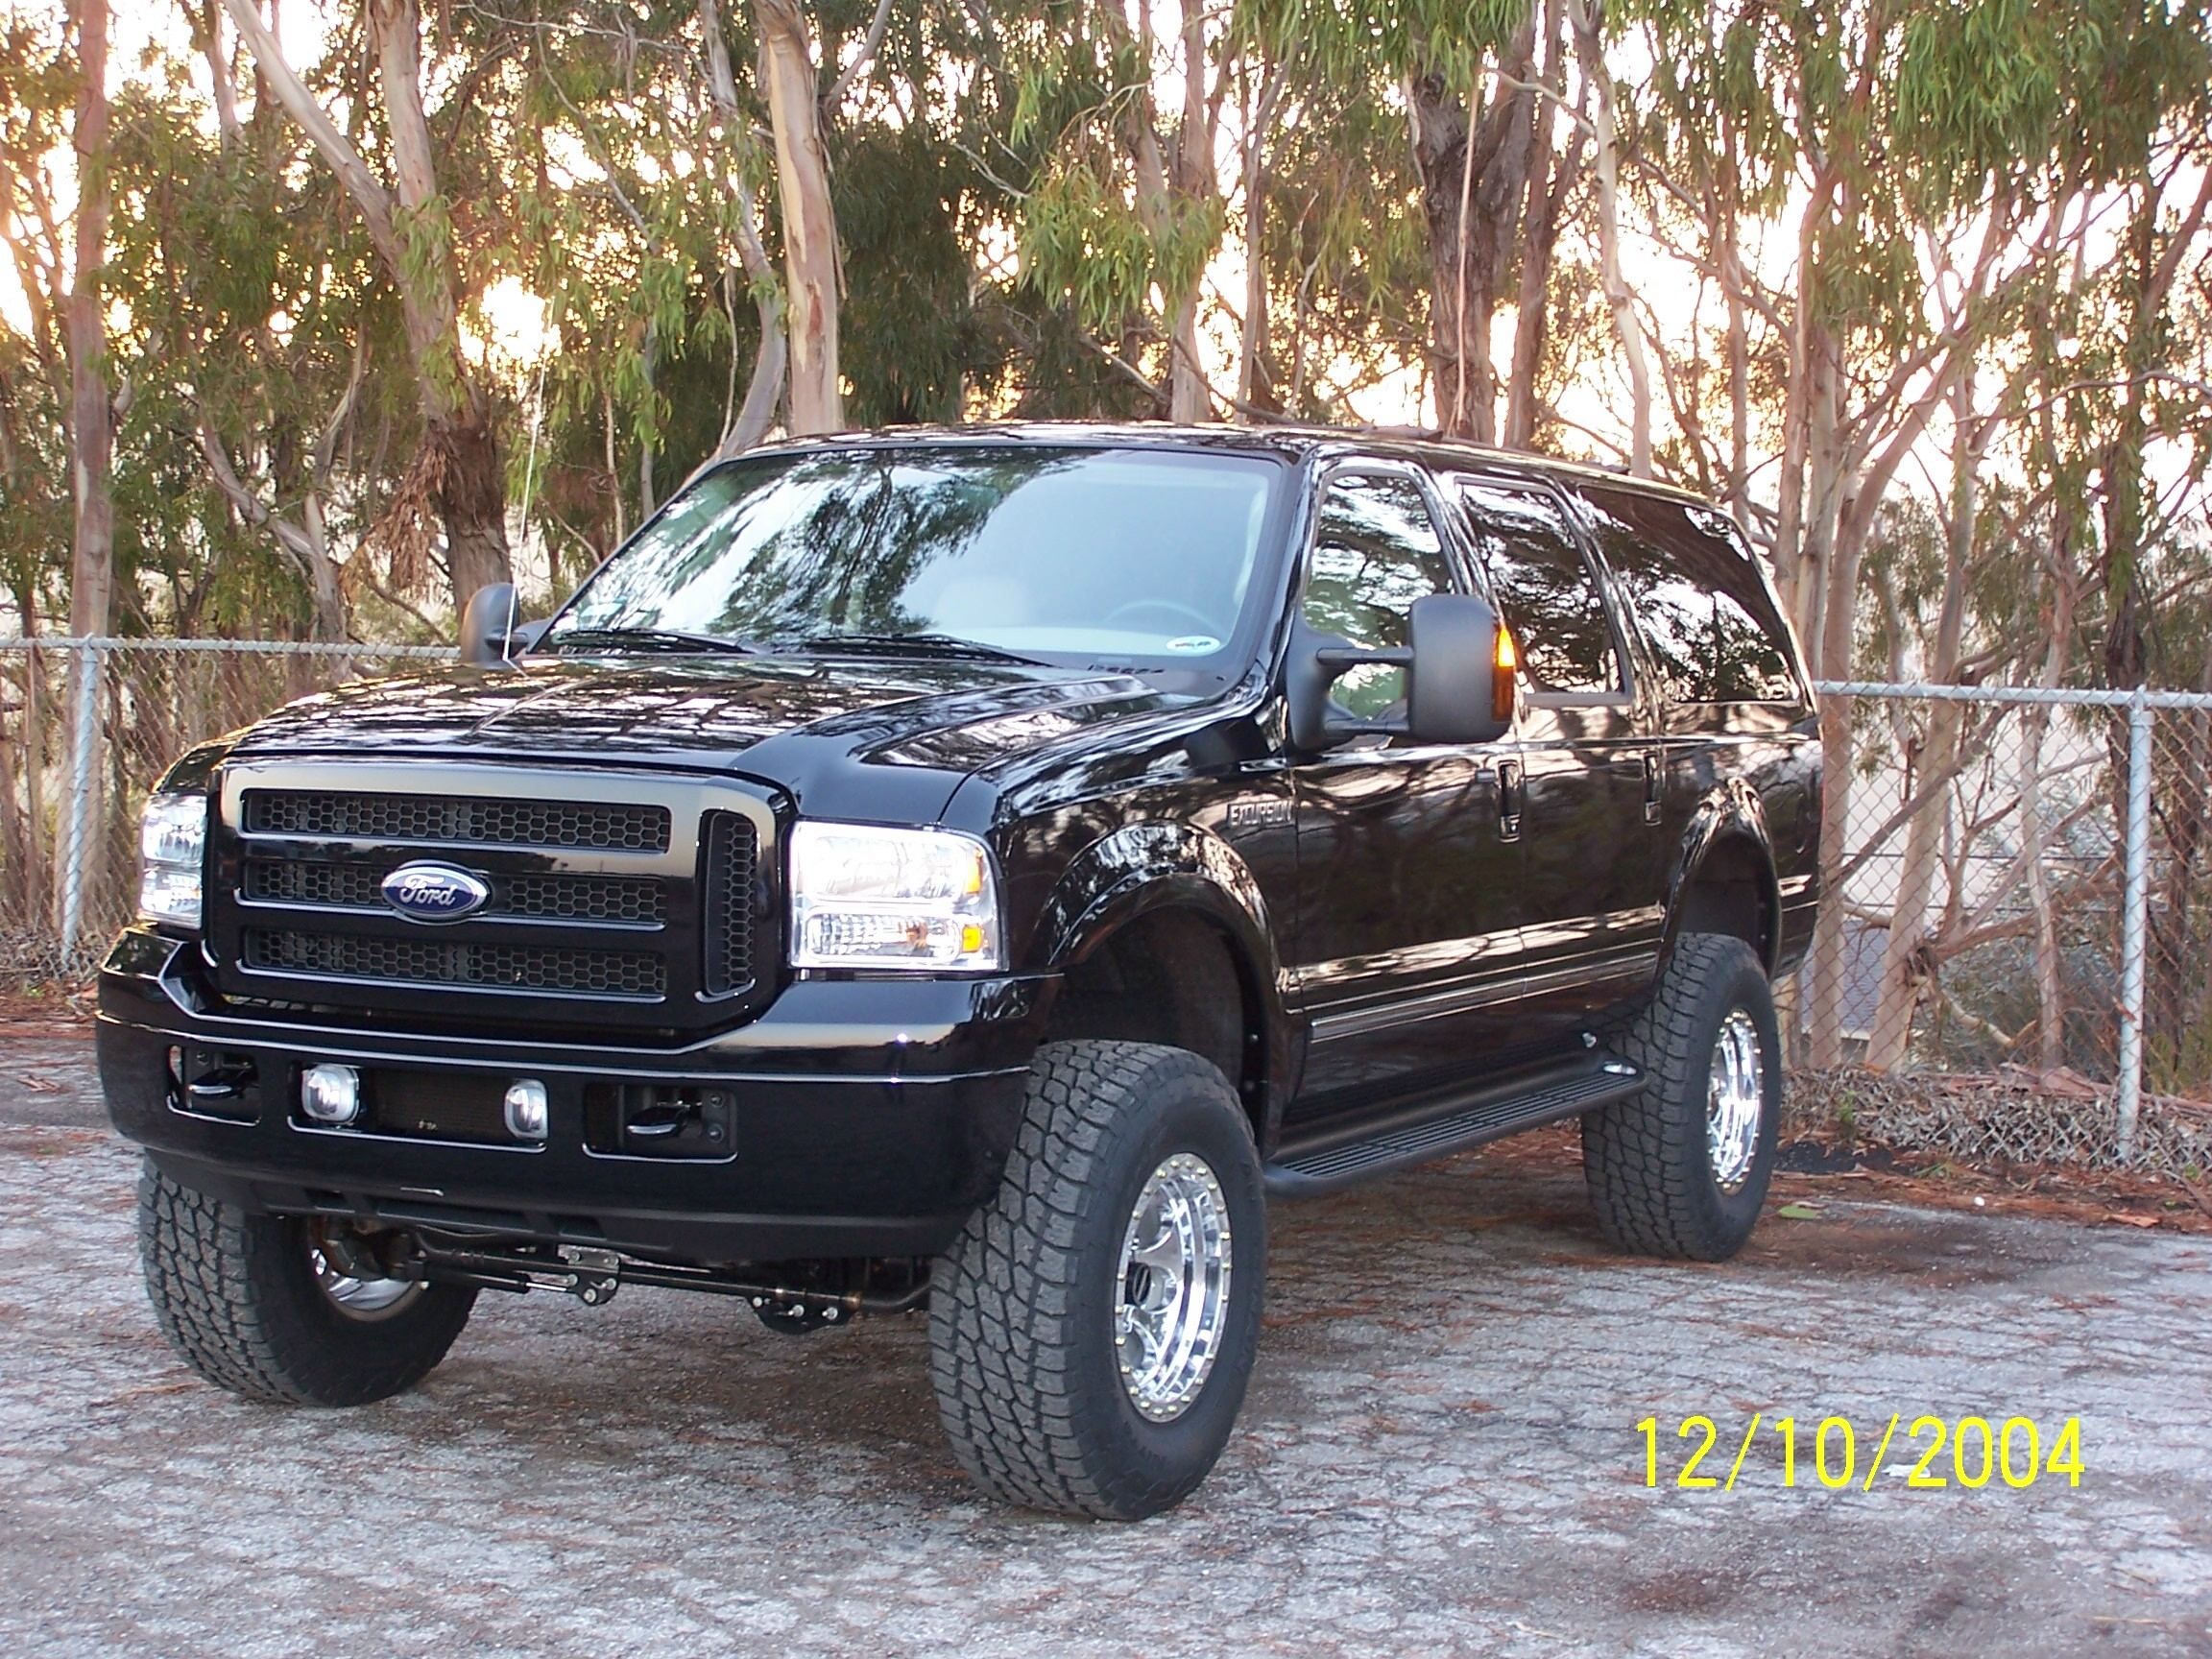 2005 Ford Excursion Image 12